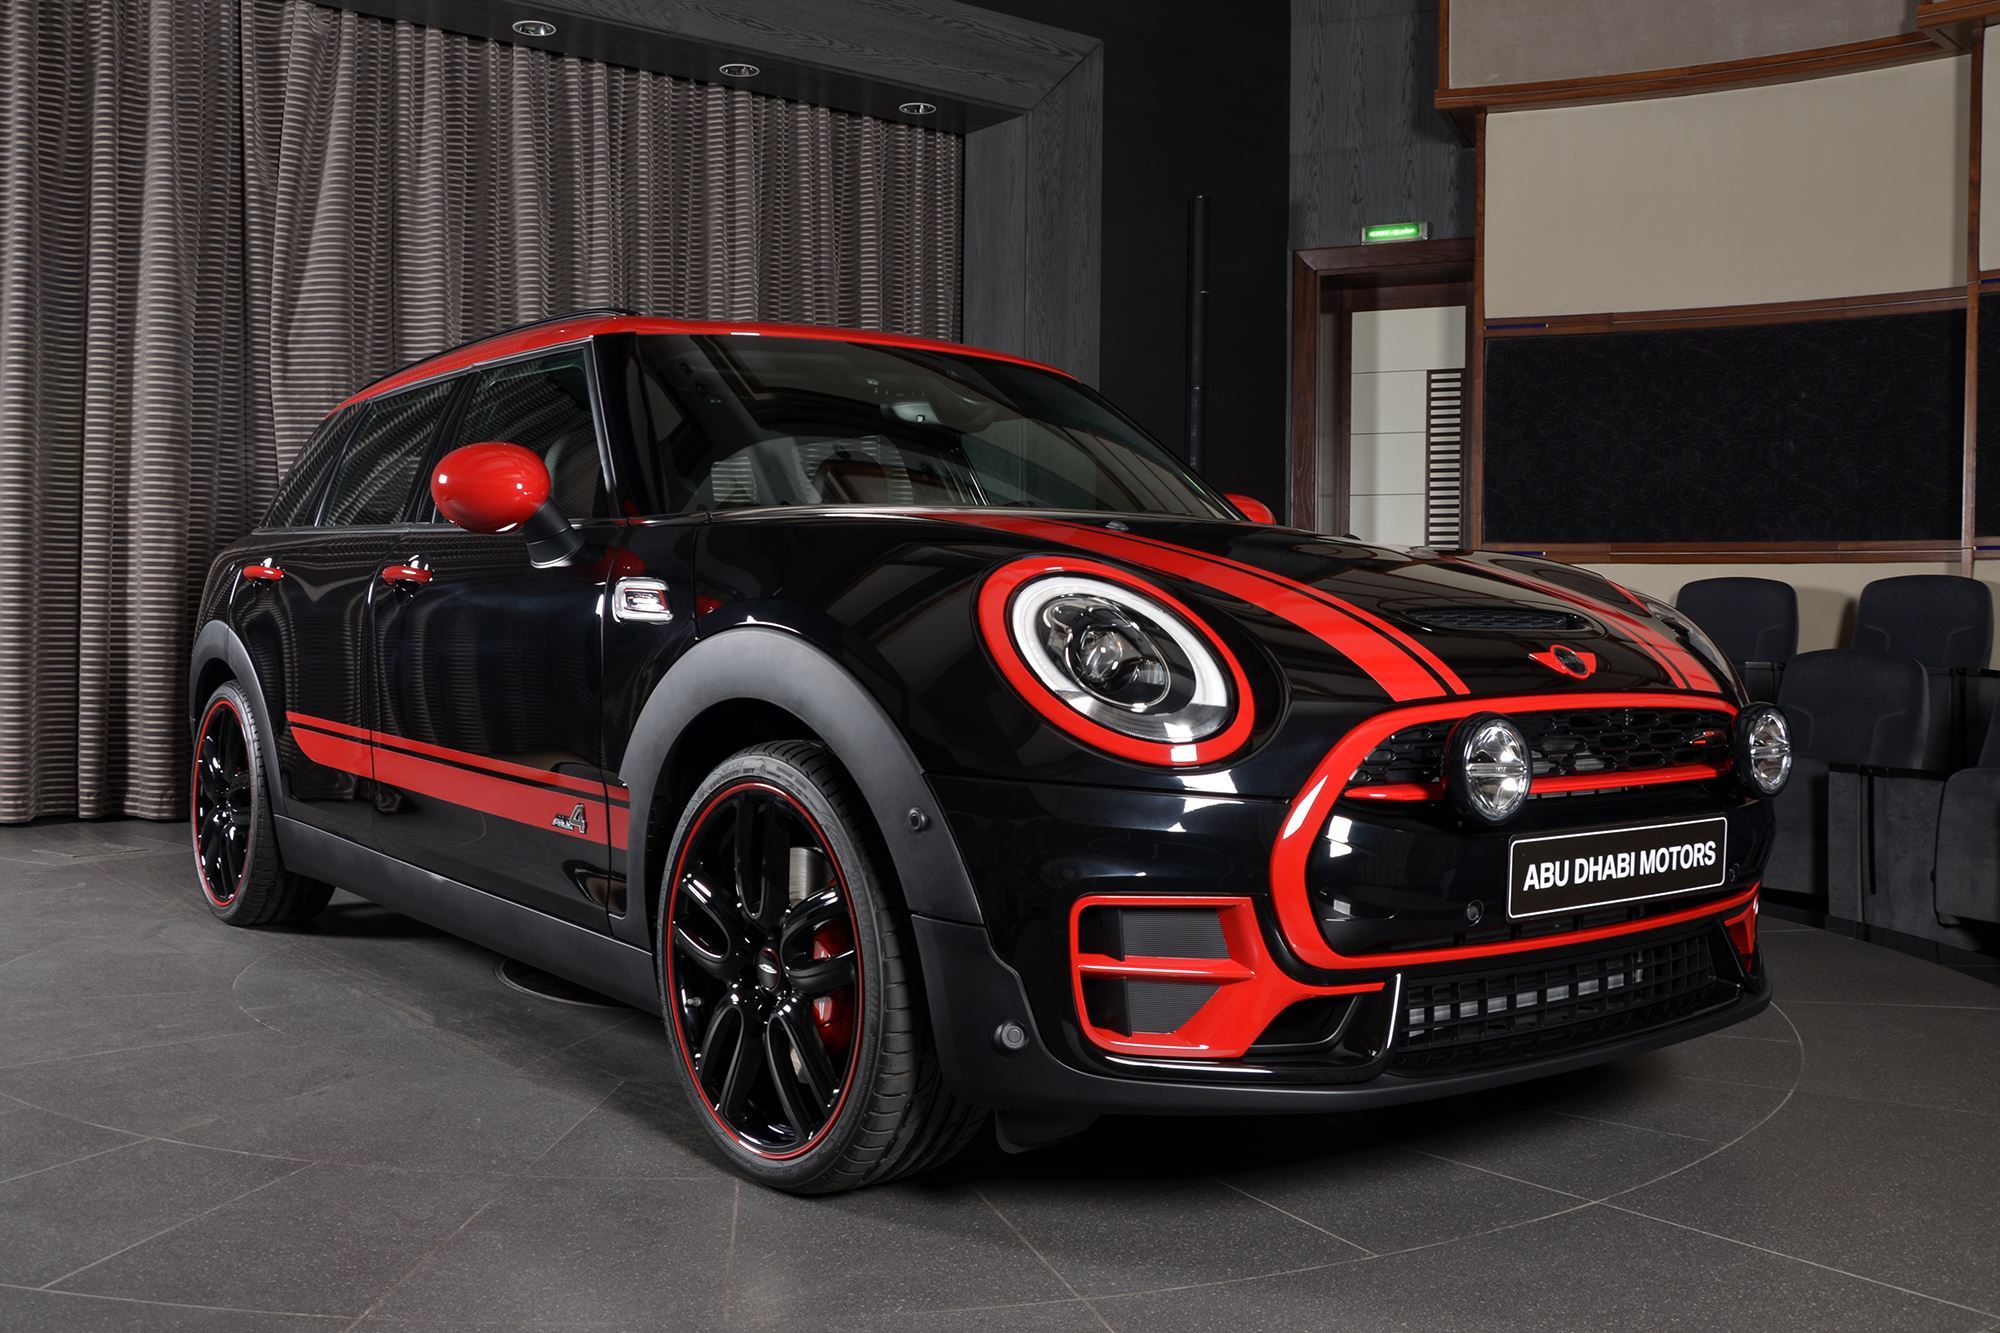 mini clubman john cooper works schwarz rot und 231 ps. Black Bedroom Furniture Sets. Home Design Ideas